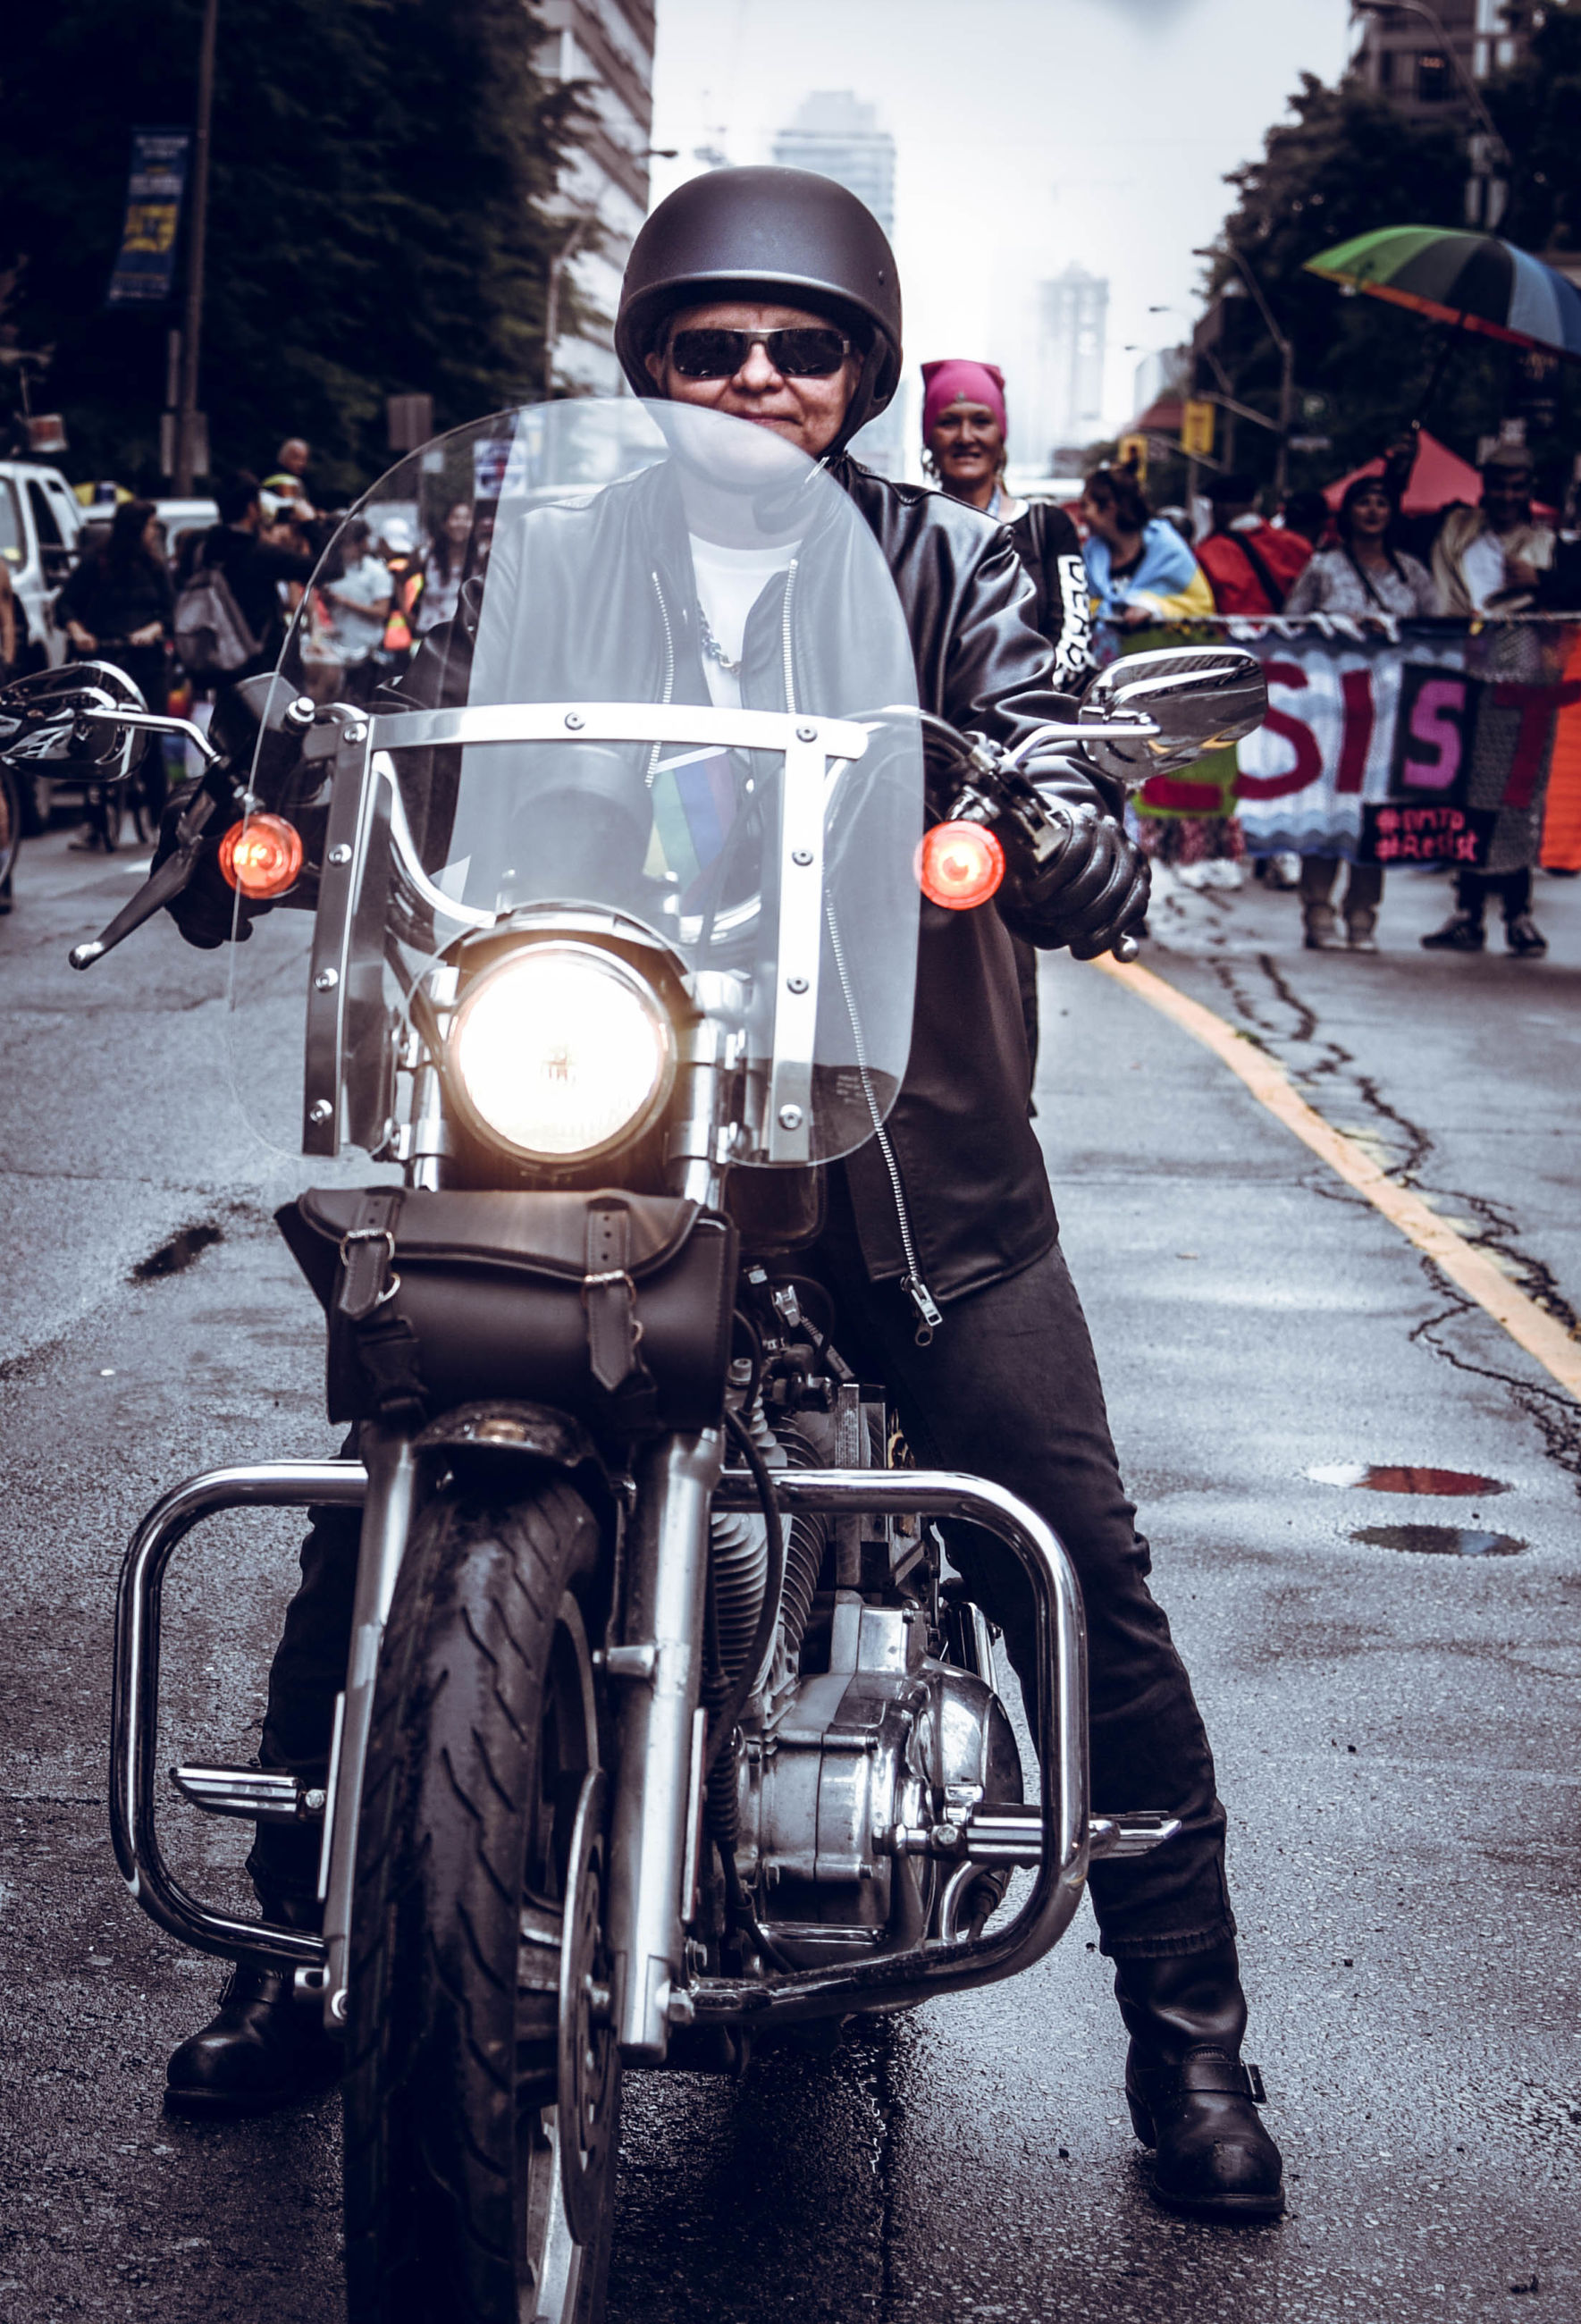 PORTRAIT OF MAN RIDING MOTORCYCLE ON STREET